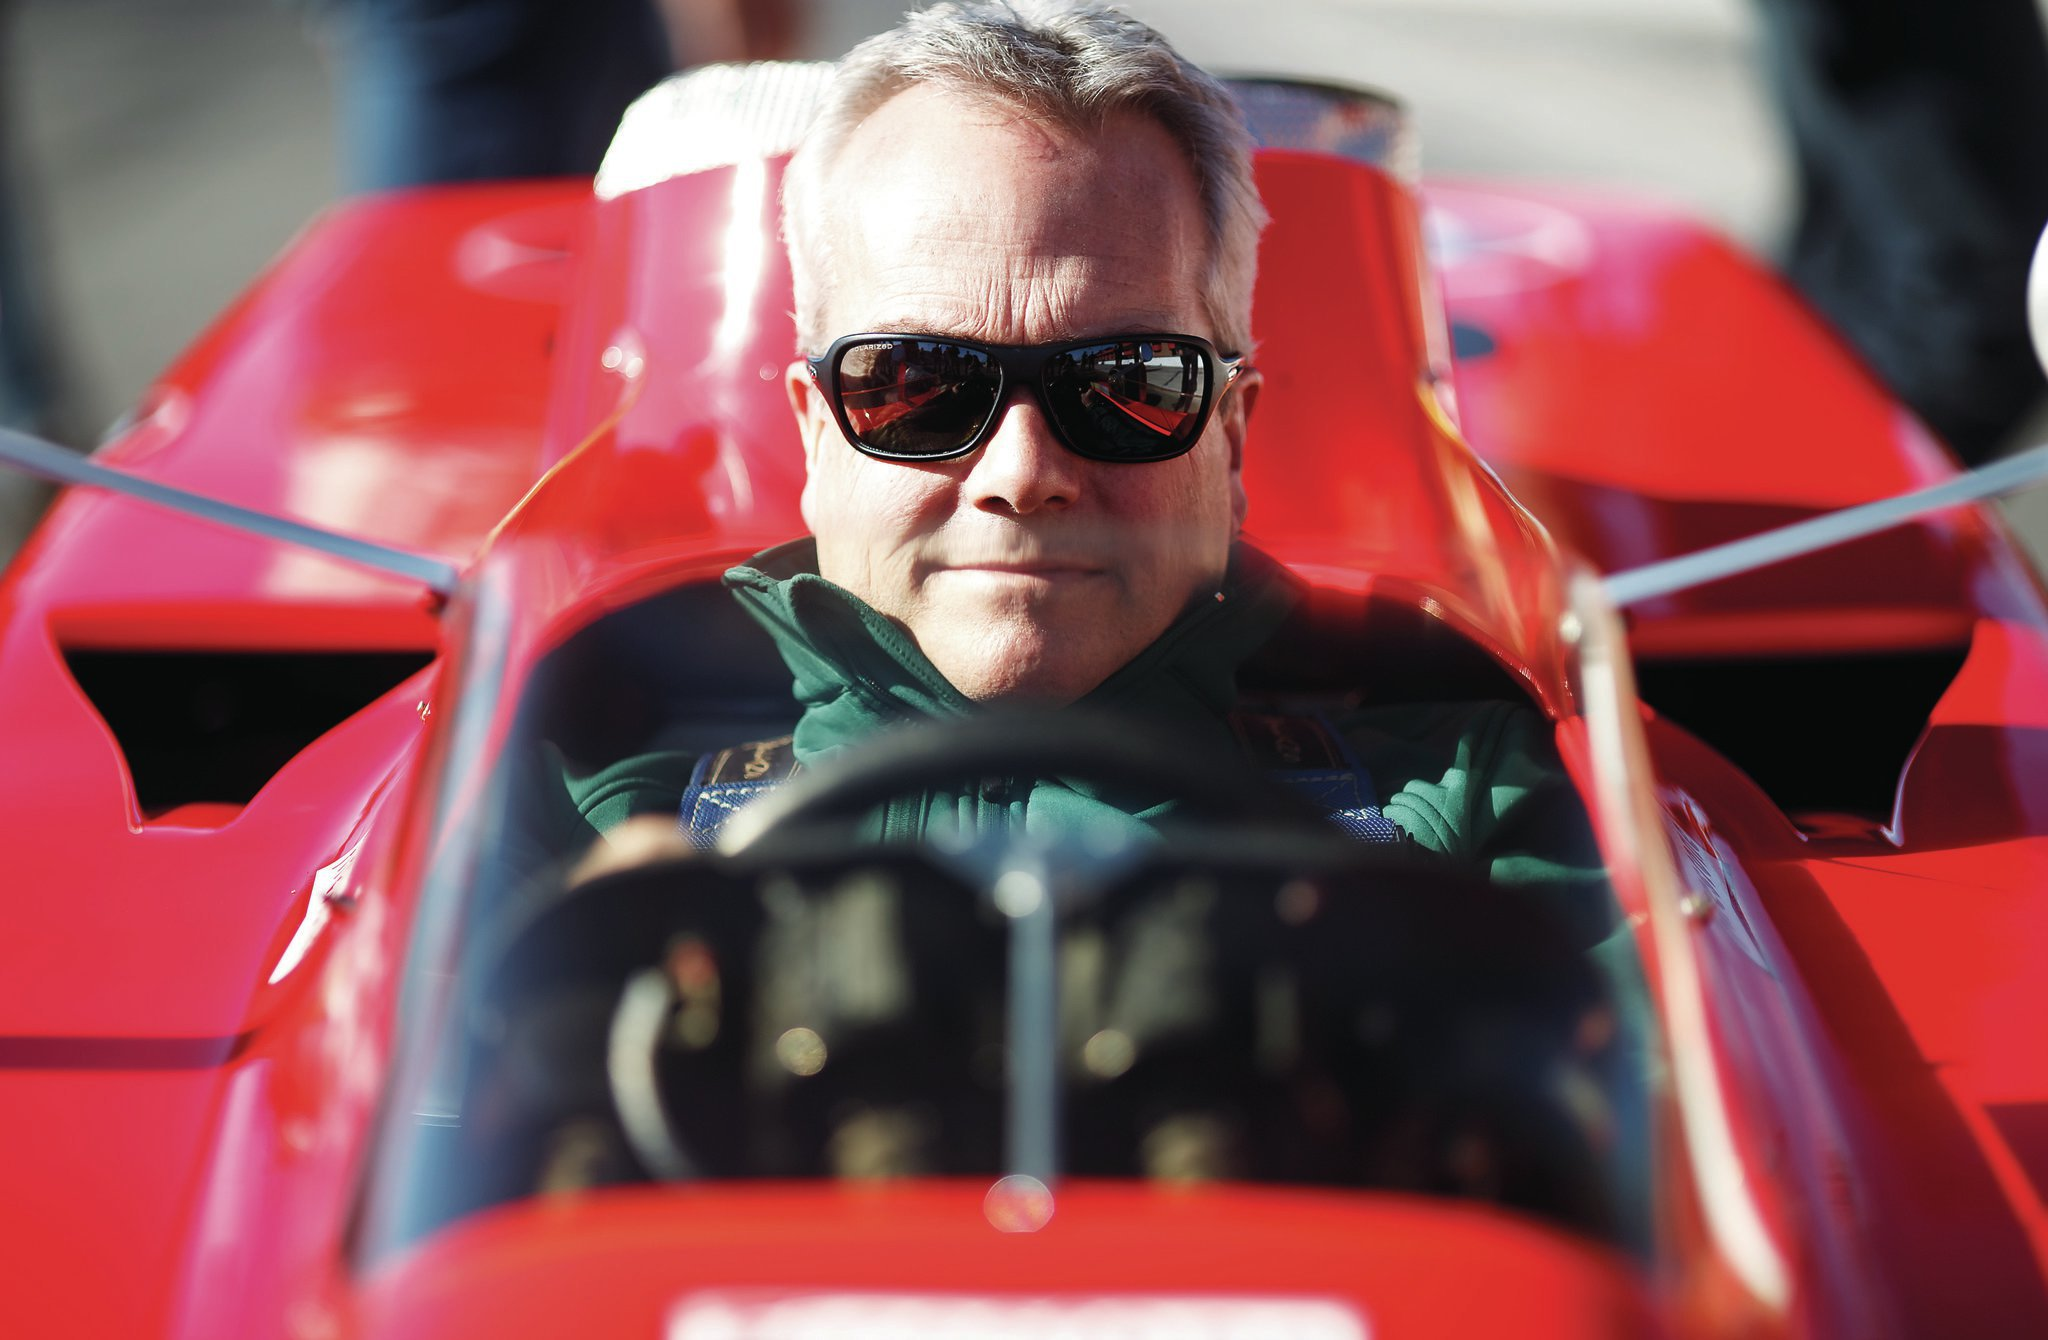 That's Clive Chapman, son of Colin, driving the car. Lotus oversaw the certification and restoration of this car with assistance from the Indianapolis Motor Speedway Museum.